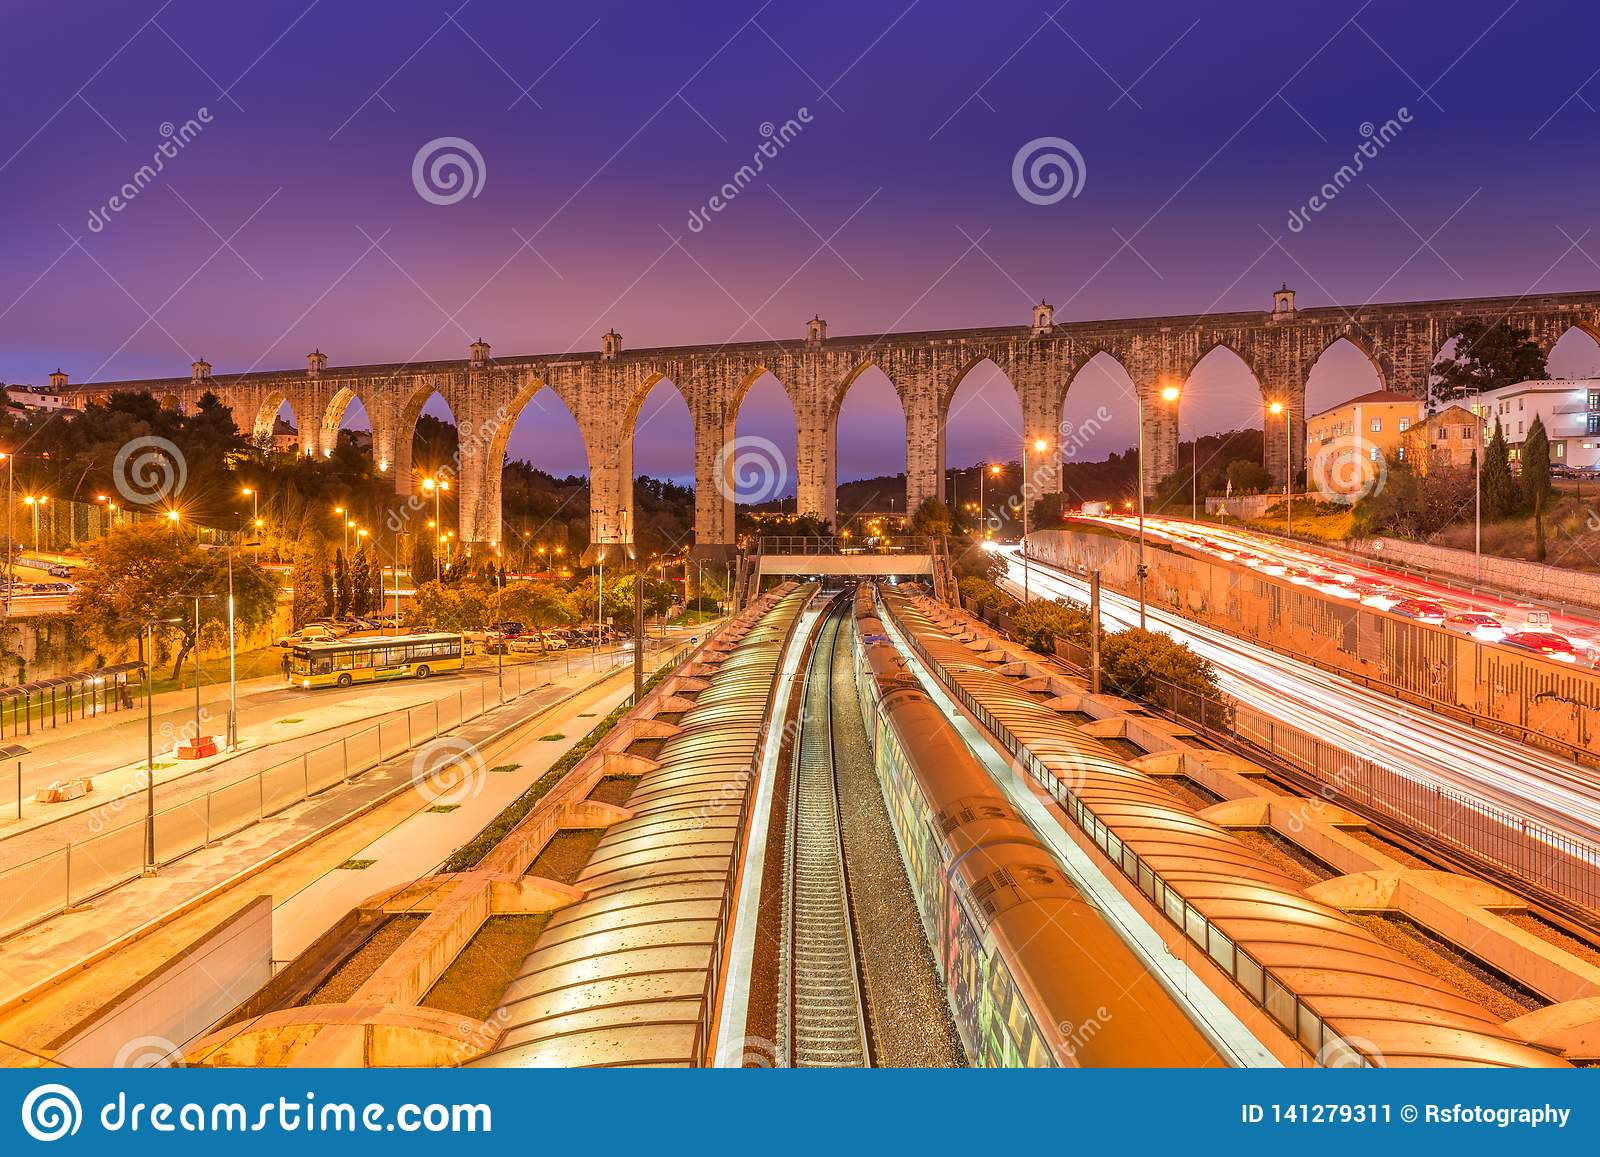 View of The Aguas Livres Aqueduct and Campolide train station, Lisbon, Portugal